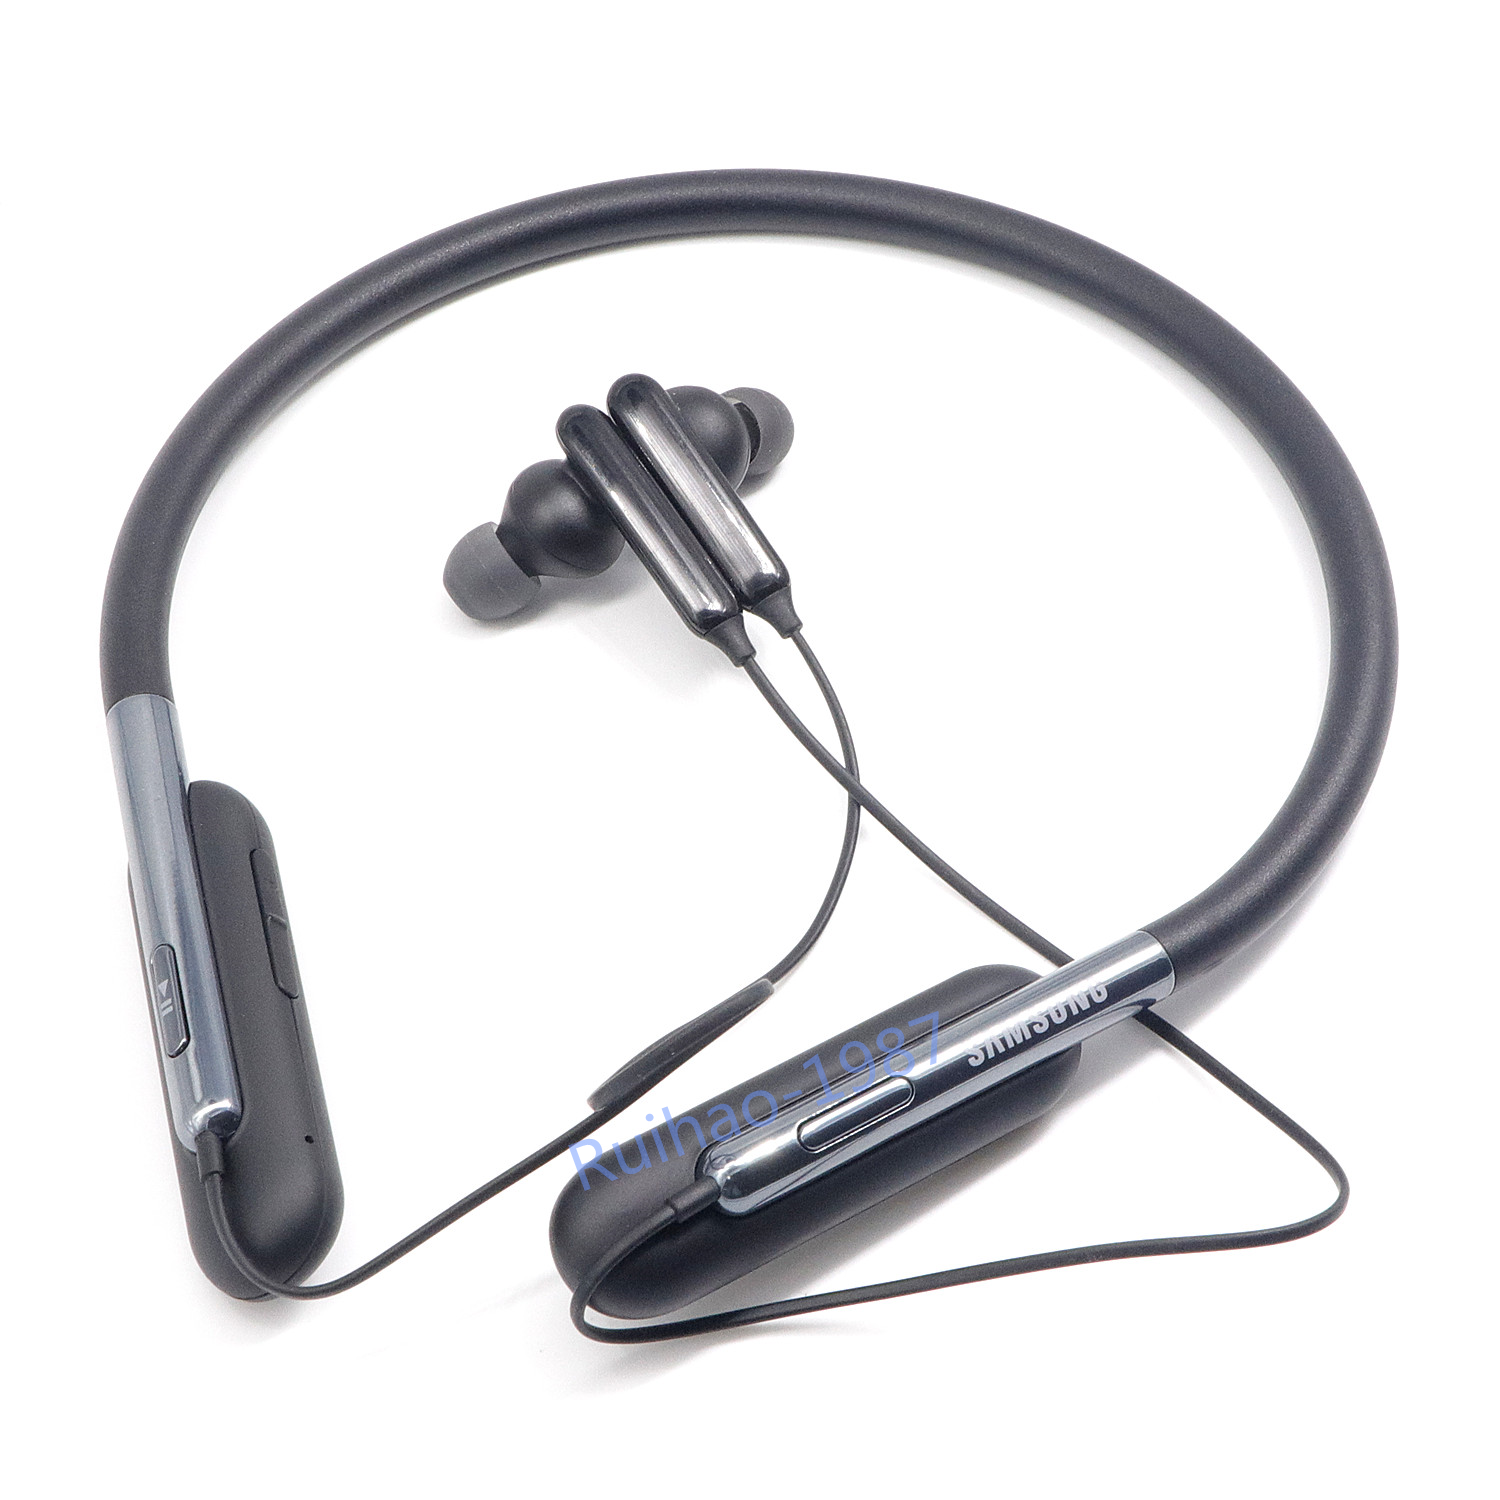 New Samsung Level U Flex Bluetooth Wireless Flexible Neckband Headset Eo Bg950 Ebay